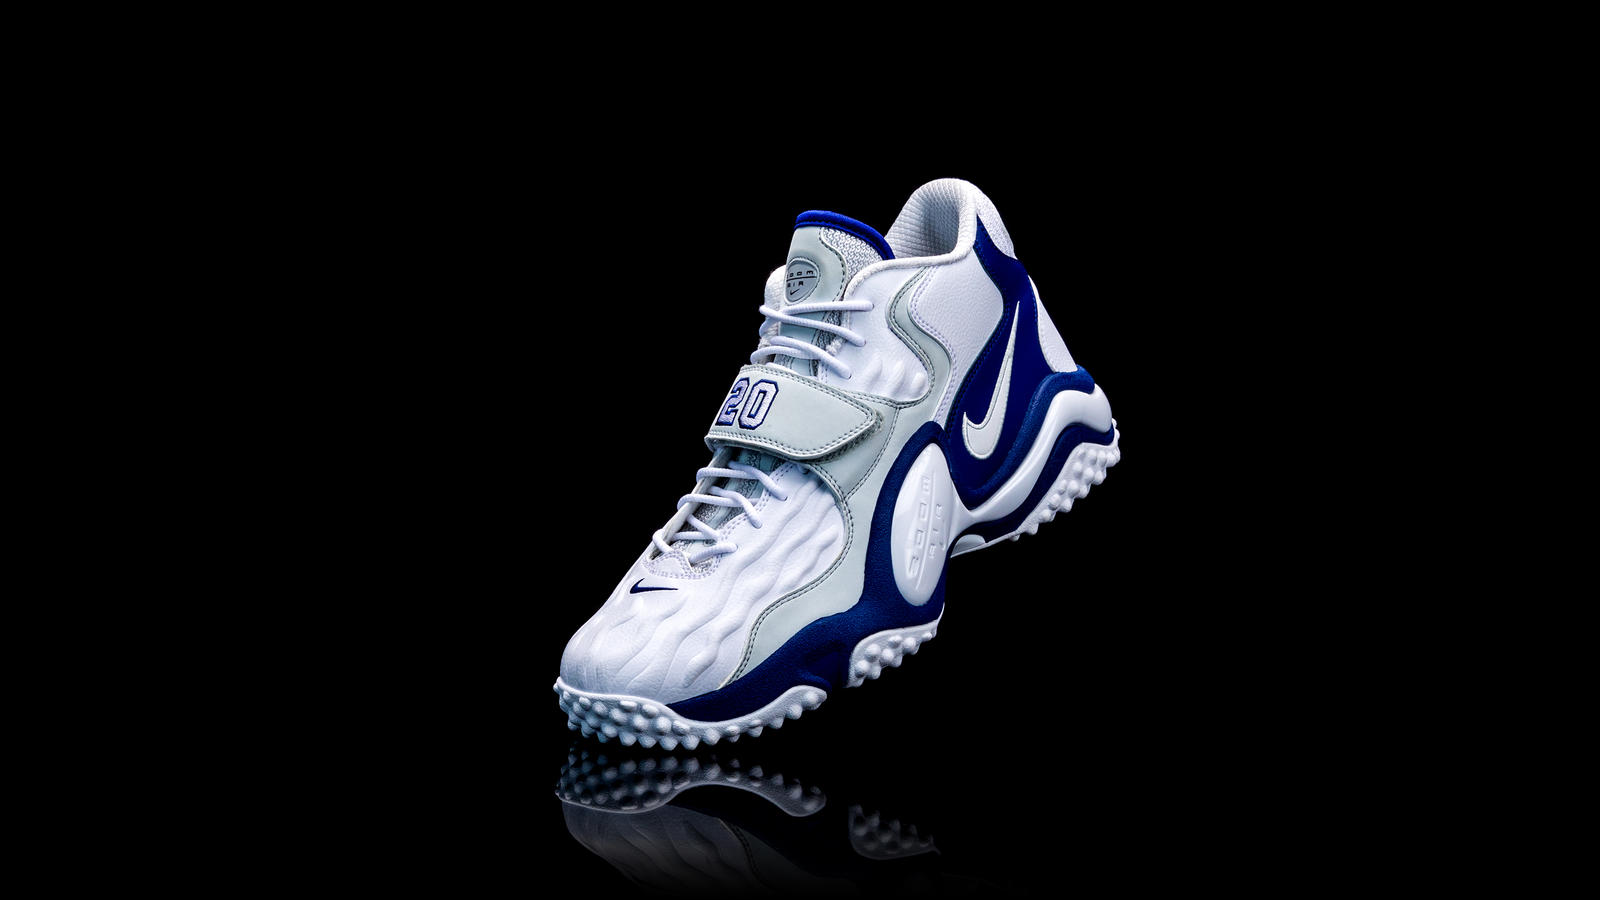 Barry Sanders Nike Air Zoom Turf Jet 97 0